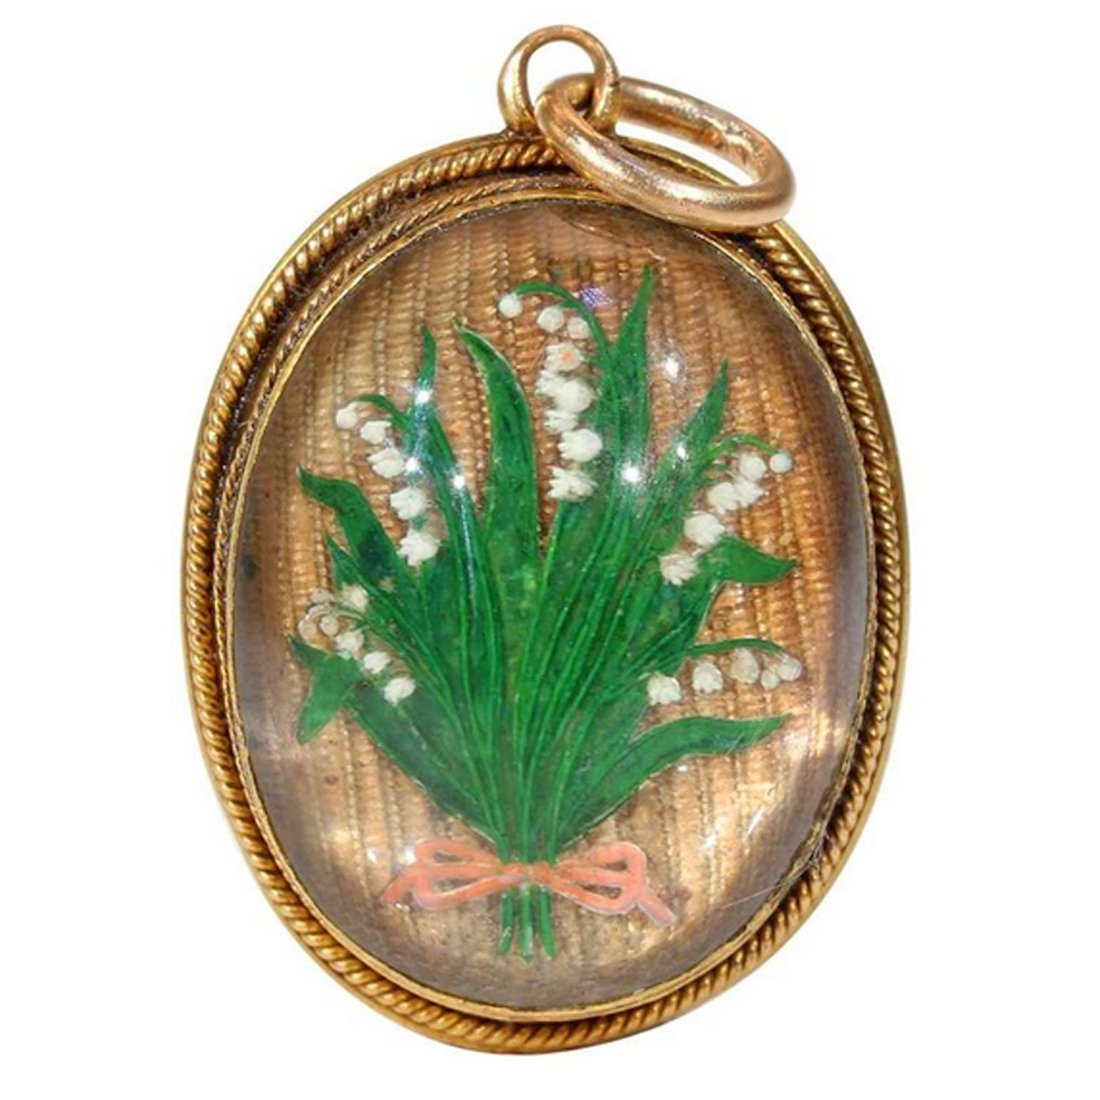 Lily of the valley pendant.